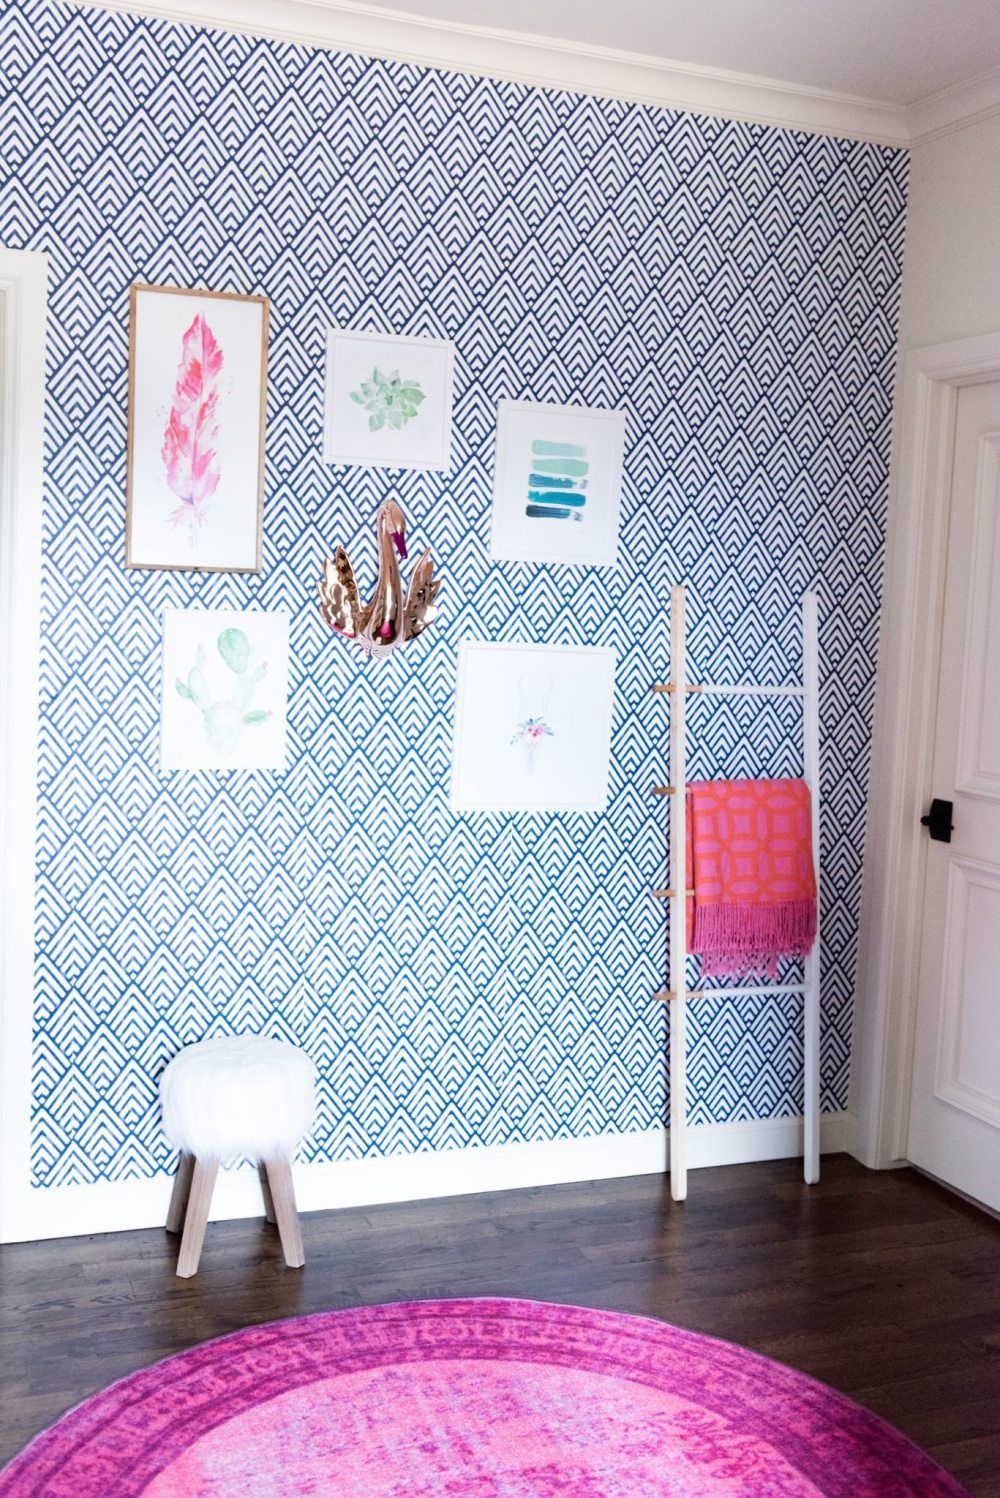 How To Hang Peel And Stick Wallpaper Curls And Cashmere Peel And Stick Wallpaper Trending Decor Stick On Wallpaper